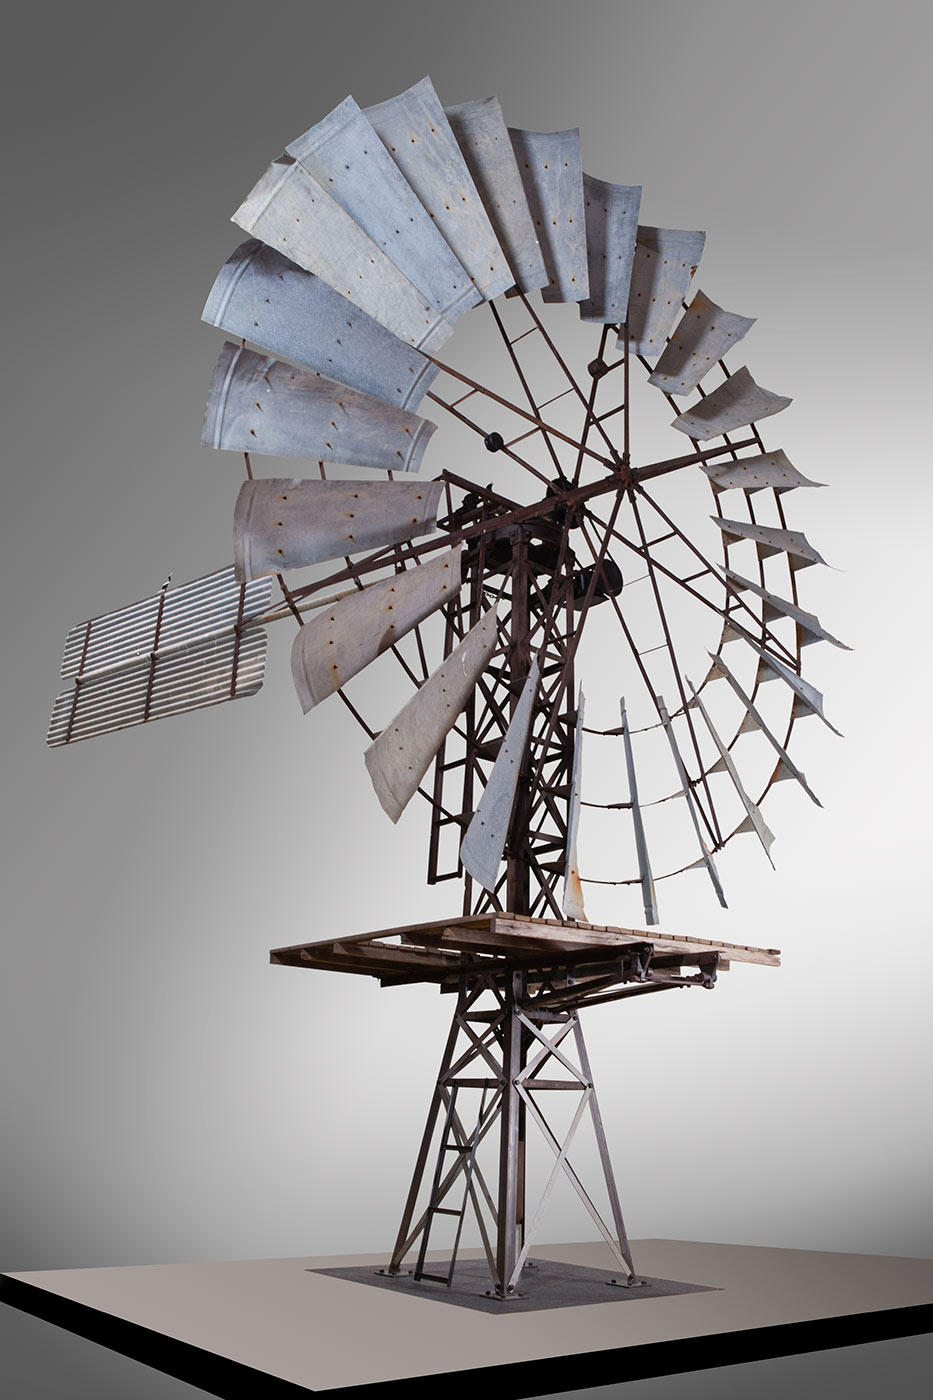 A photo of the top section of a windmill on display indoors